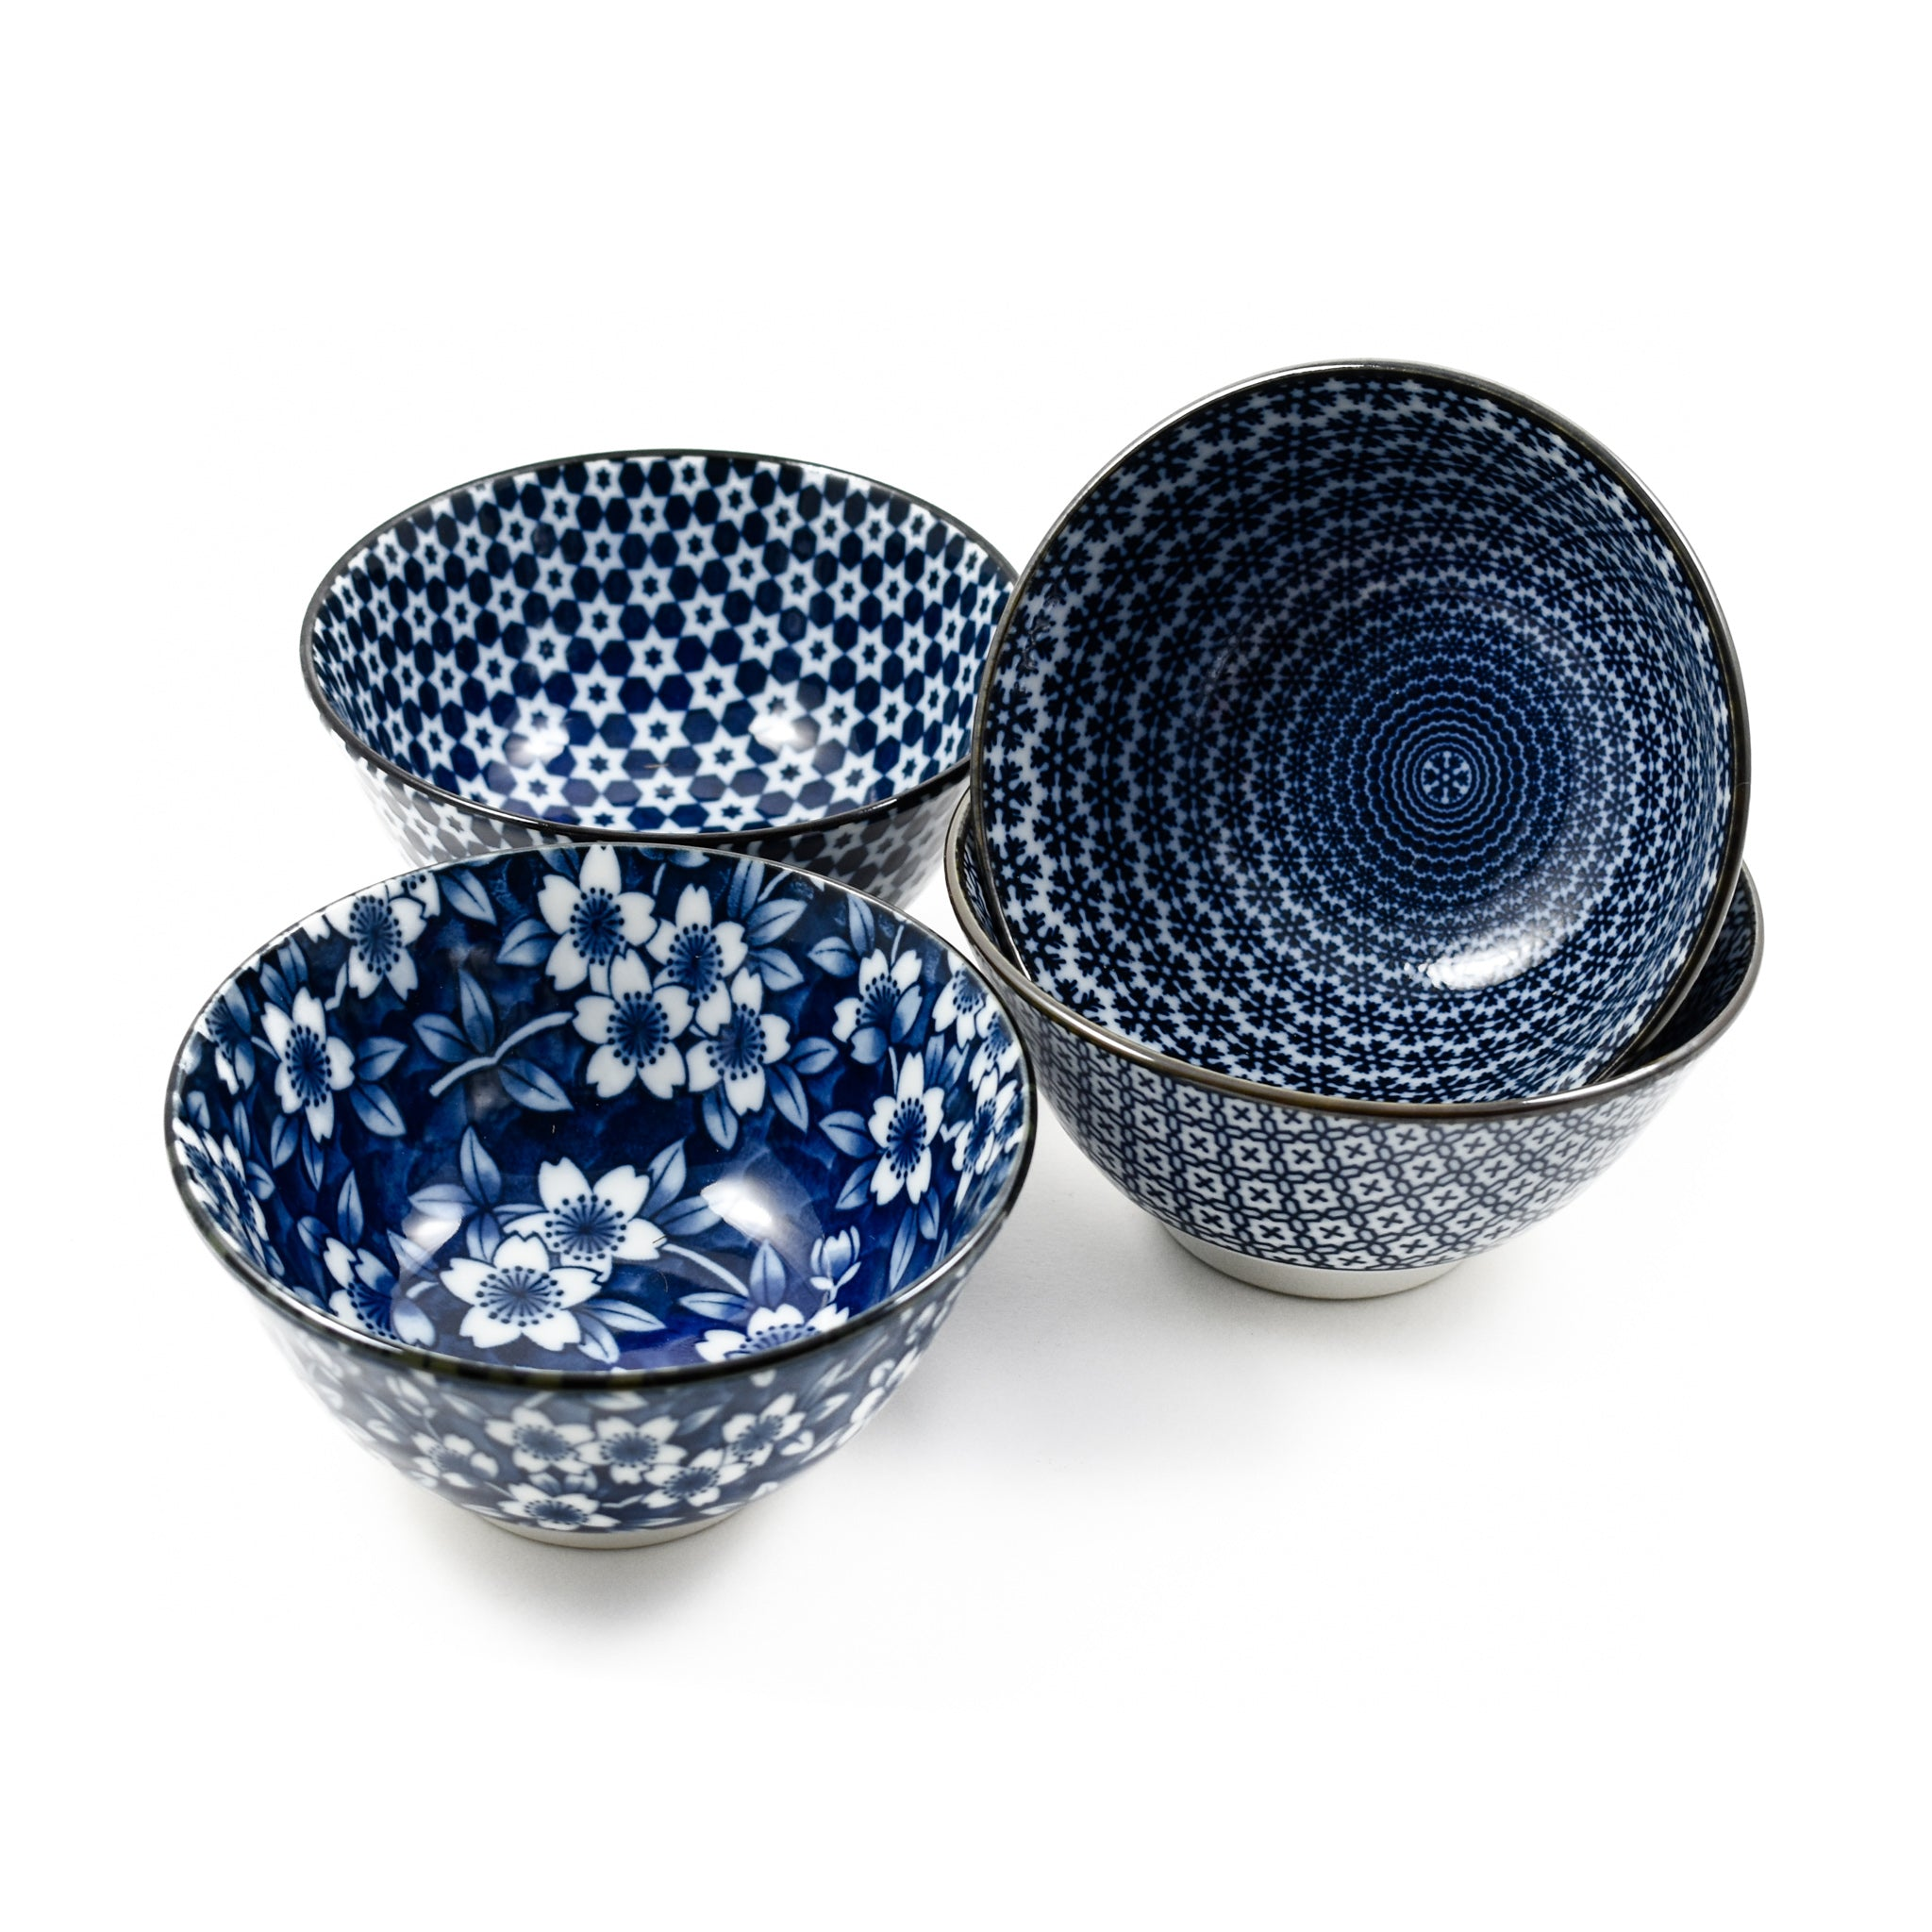 Kiji Stoneware & Ceramics Blue & White Rice Bowl Boxed Gift Set Tableware Japanese Tableware Japanese Food